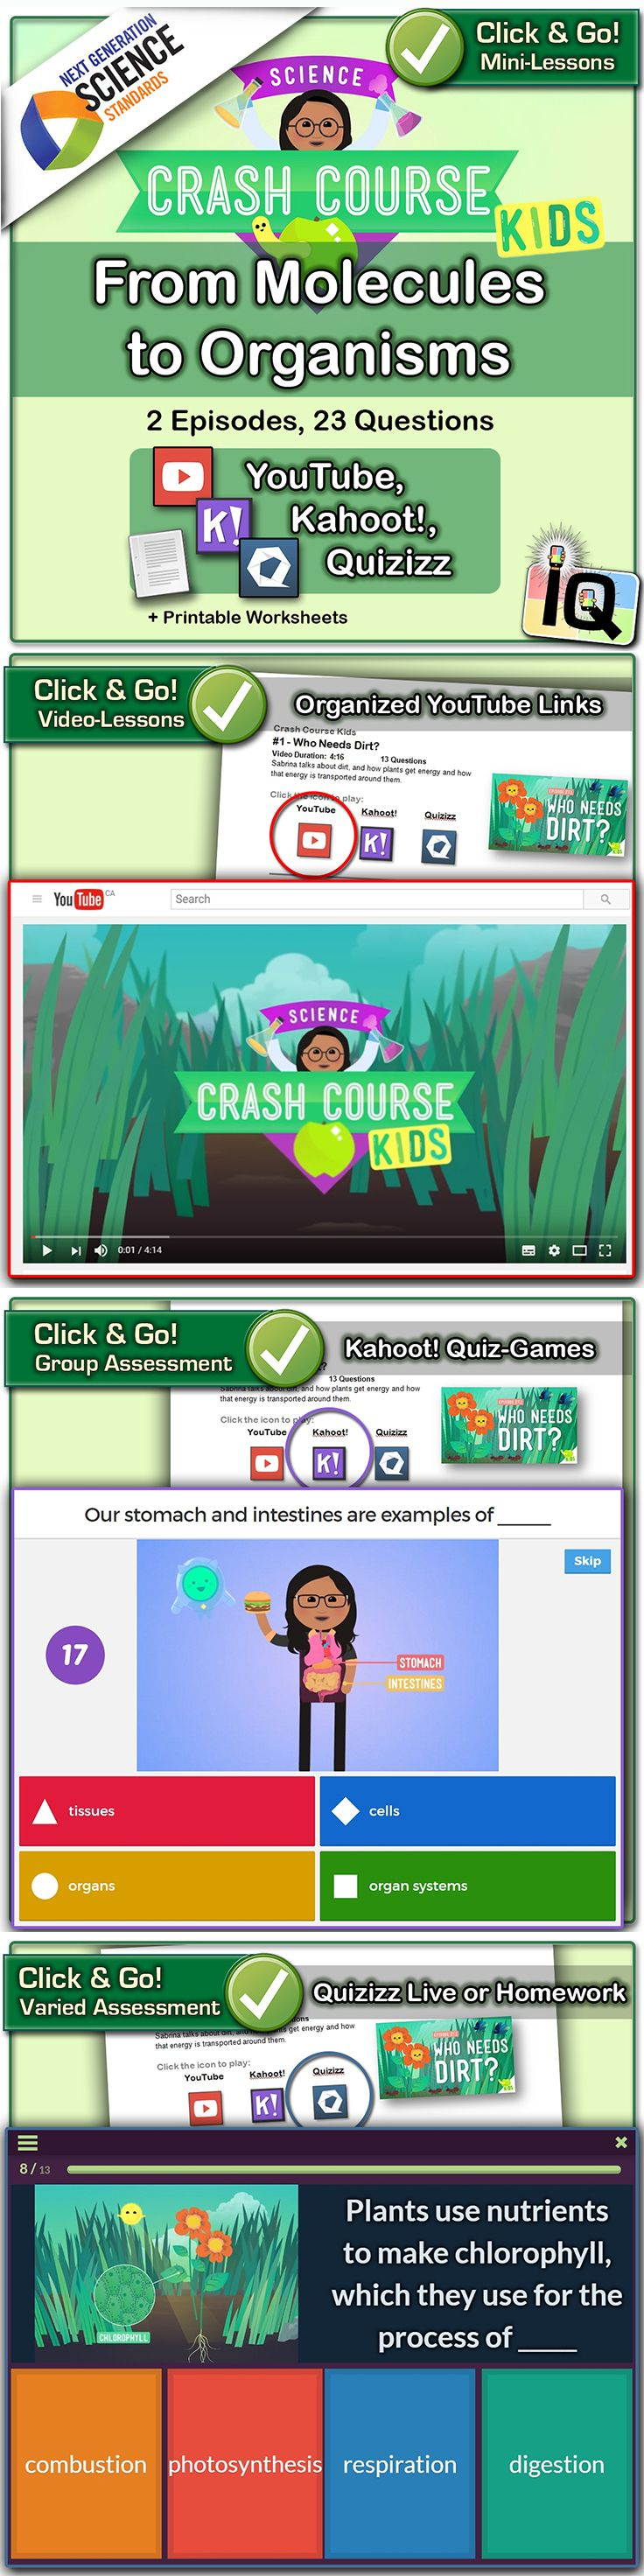 Freebie!  Just Point and Click for instant Mini-Lessons with Game-Based Assessment! ... Crash Course Kids, From Molecules to Organisms - Interactive Quizzes ... The Crash Course videos and Interactive Quizzes in this series are aligned with Next Generation Science Standards: � 5-LS1-1: From Molecules to Organisms ... https://www.teacherspayteachers.com/Product/Crash-Course-Kids-From-Molecules-to-Organisms-IQ-NGSS-with-worksheets-2943327    �  Game-based learning with Quizizz and Kahoot!